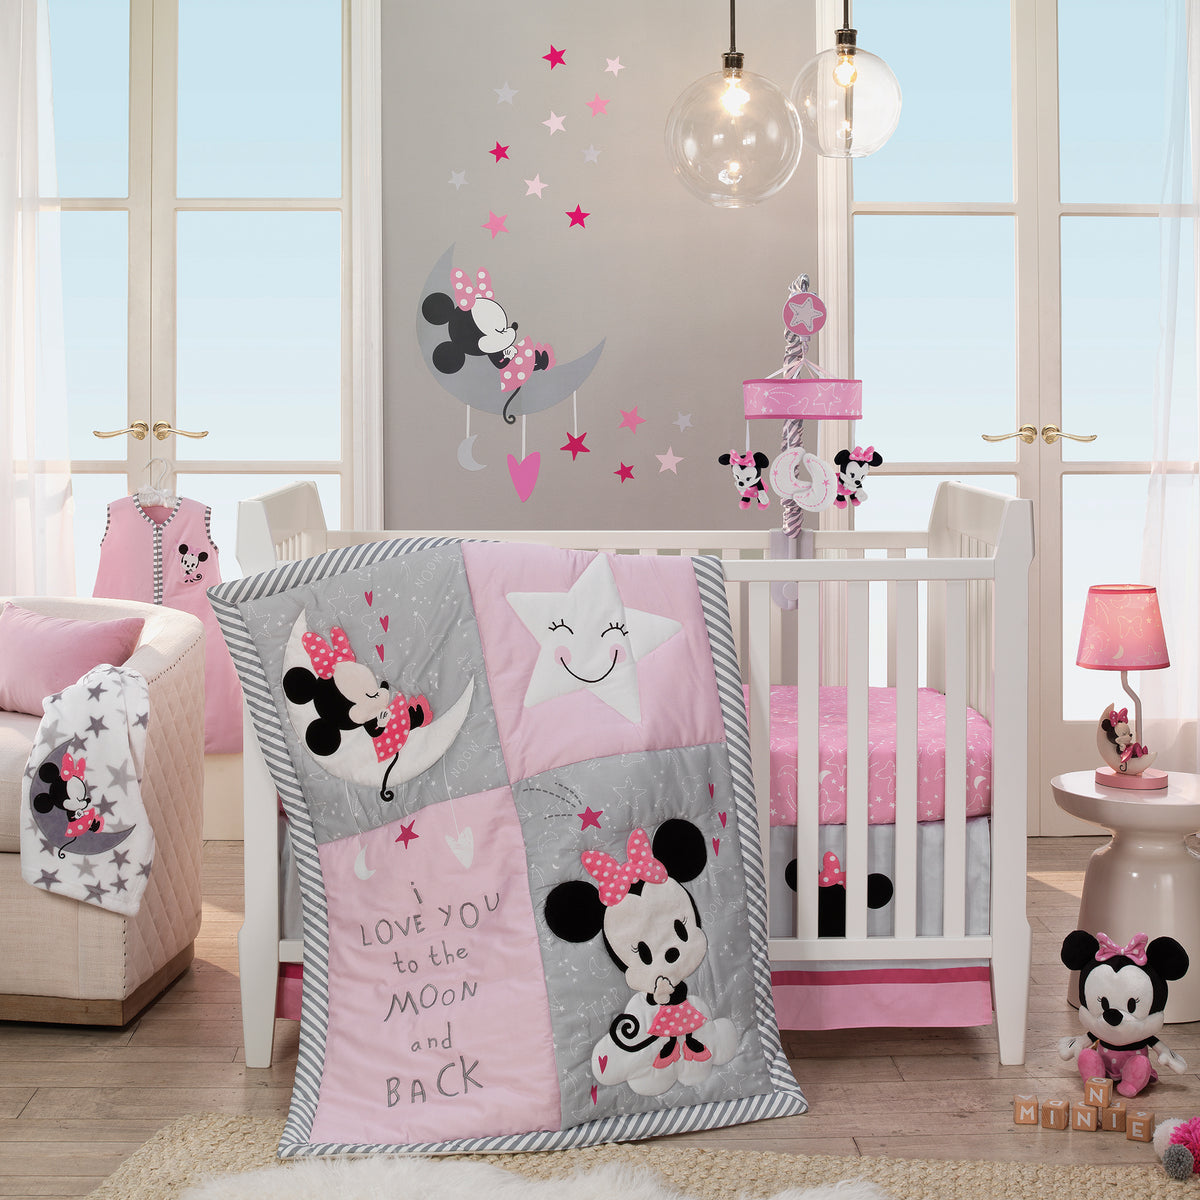 Disney Baby Minnie Mouse Pink 4 Piece Nursery Crib Bedding Set